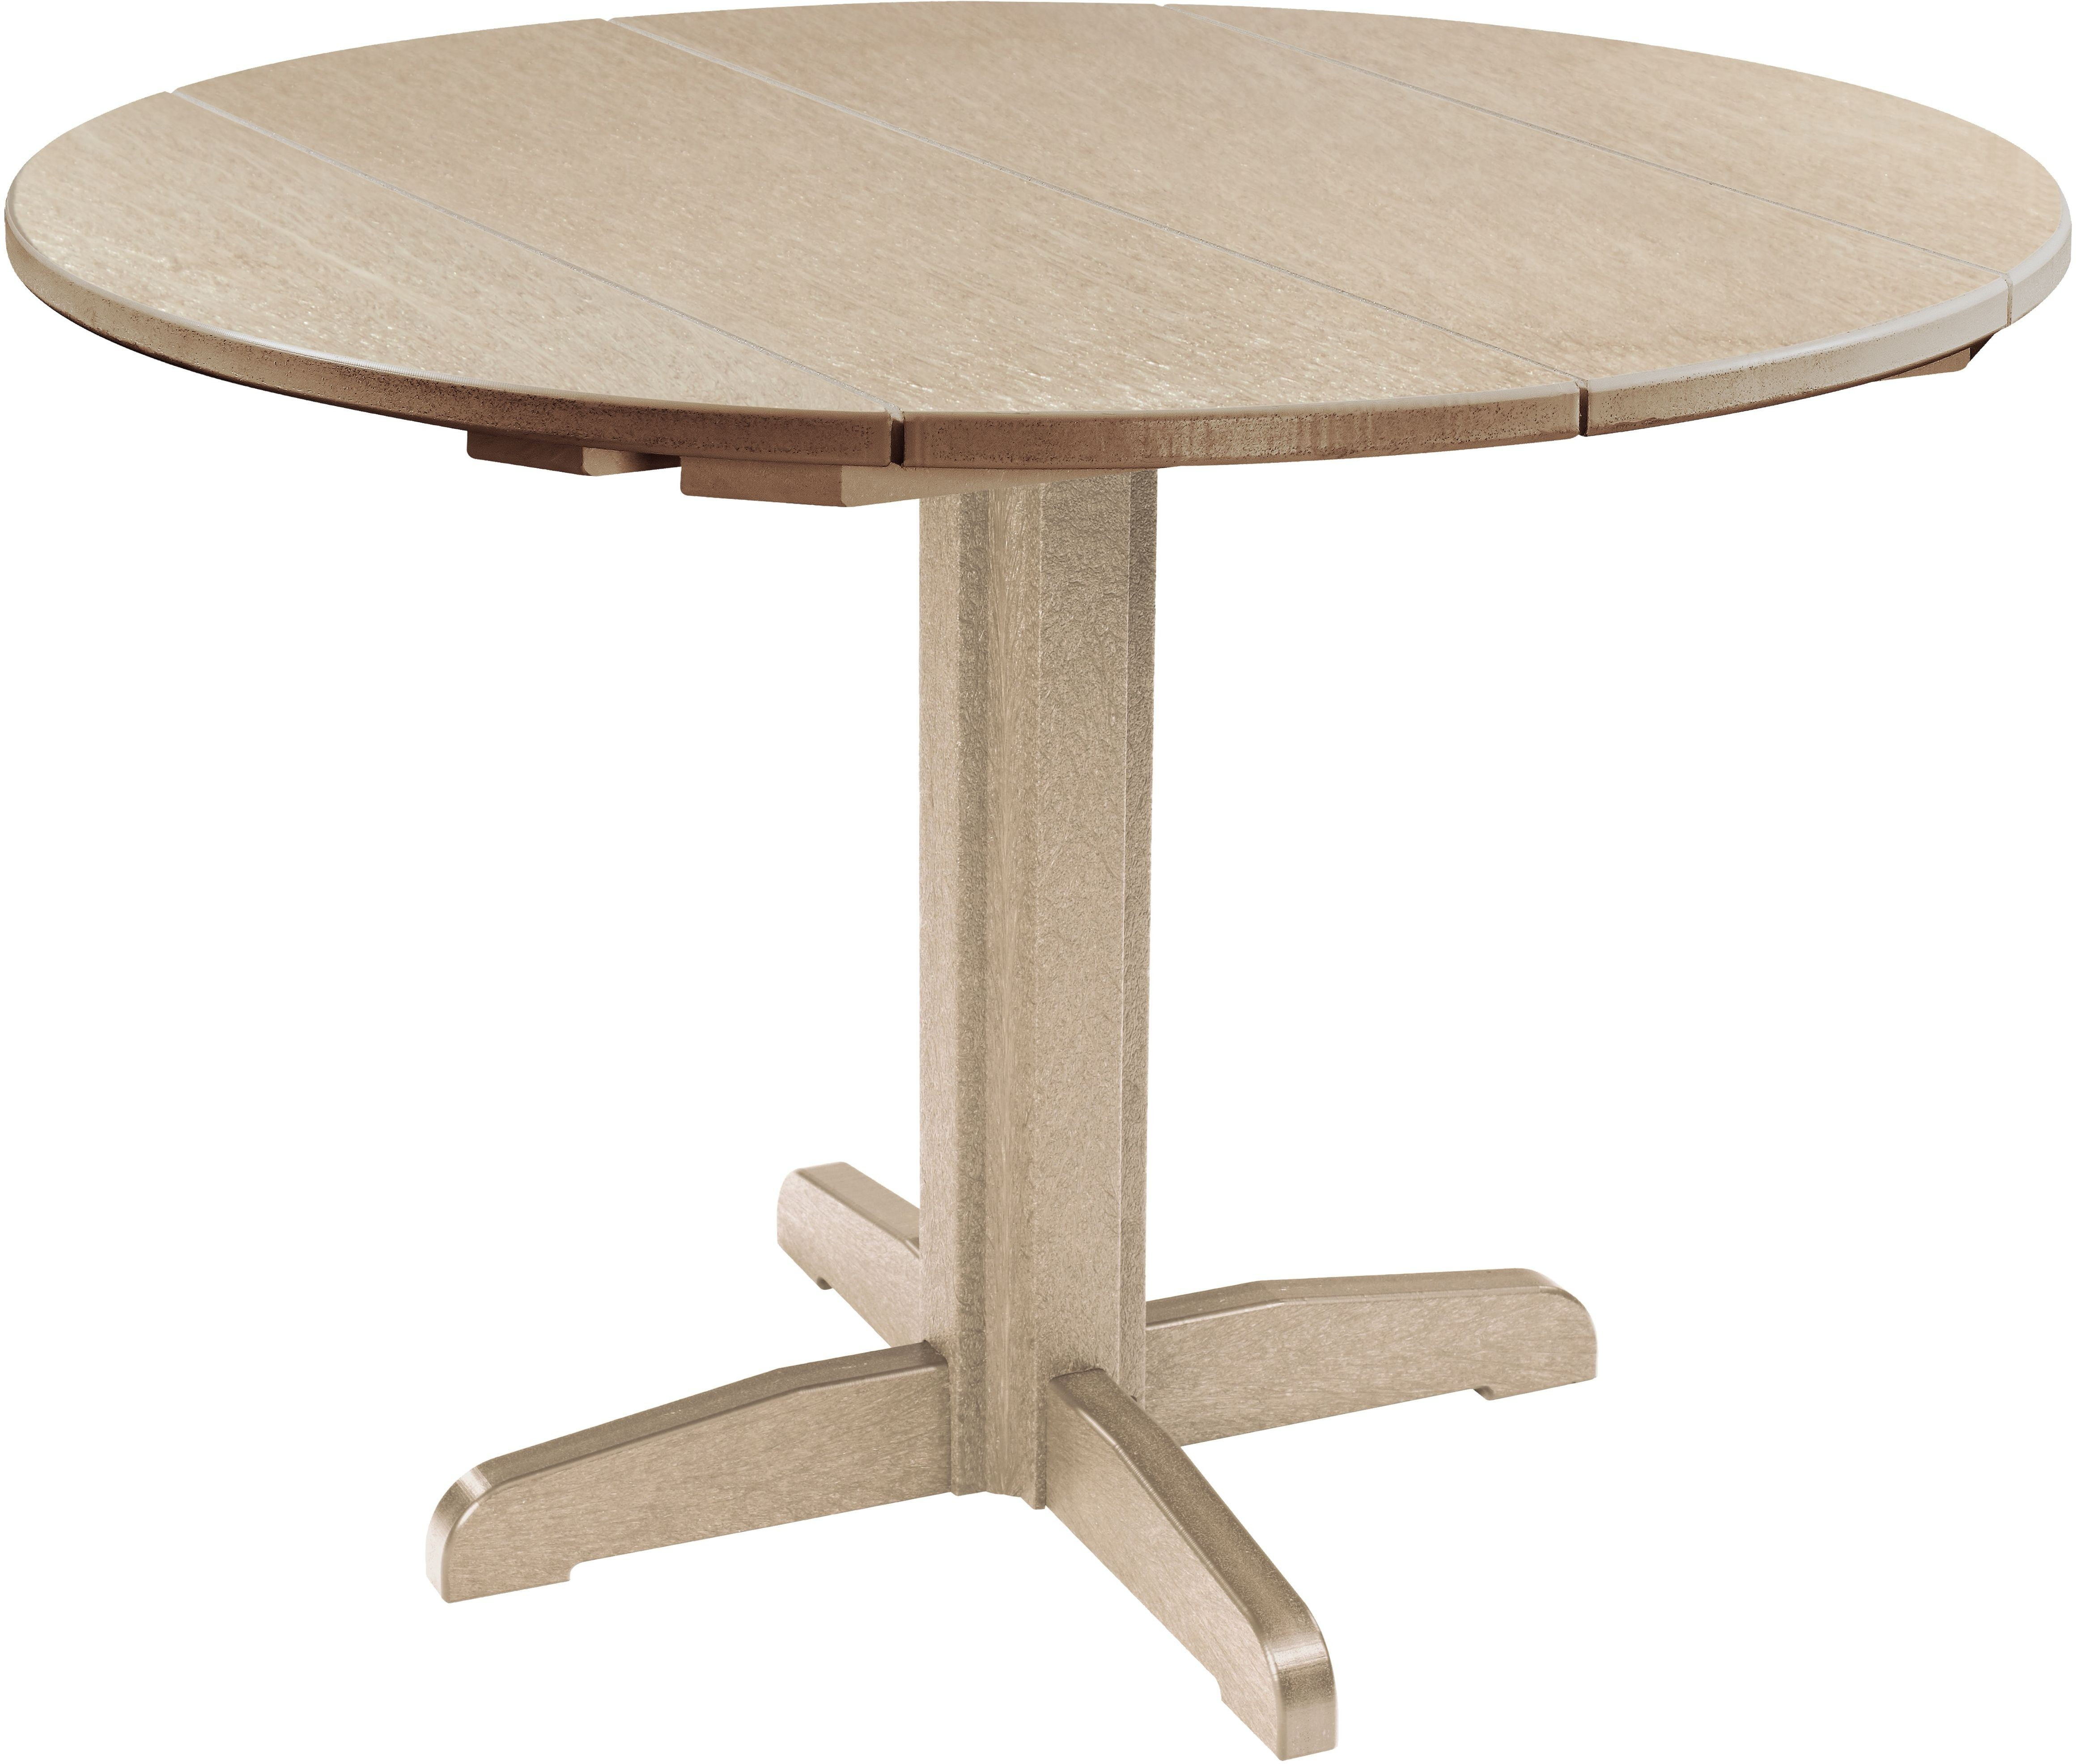 generation beige 40 round dining table from cr plastic coleman furniture. Black Bedroom Furniture Sets. Home Design Ideas